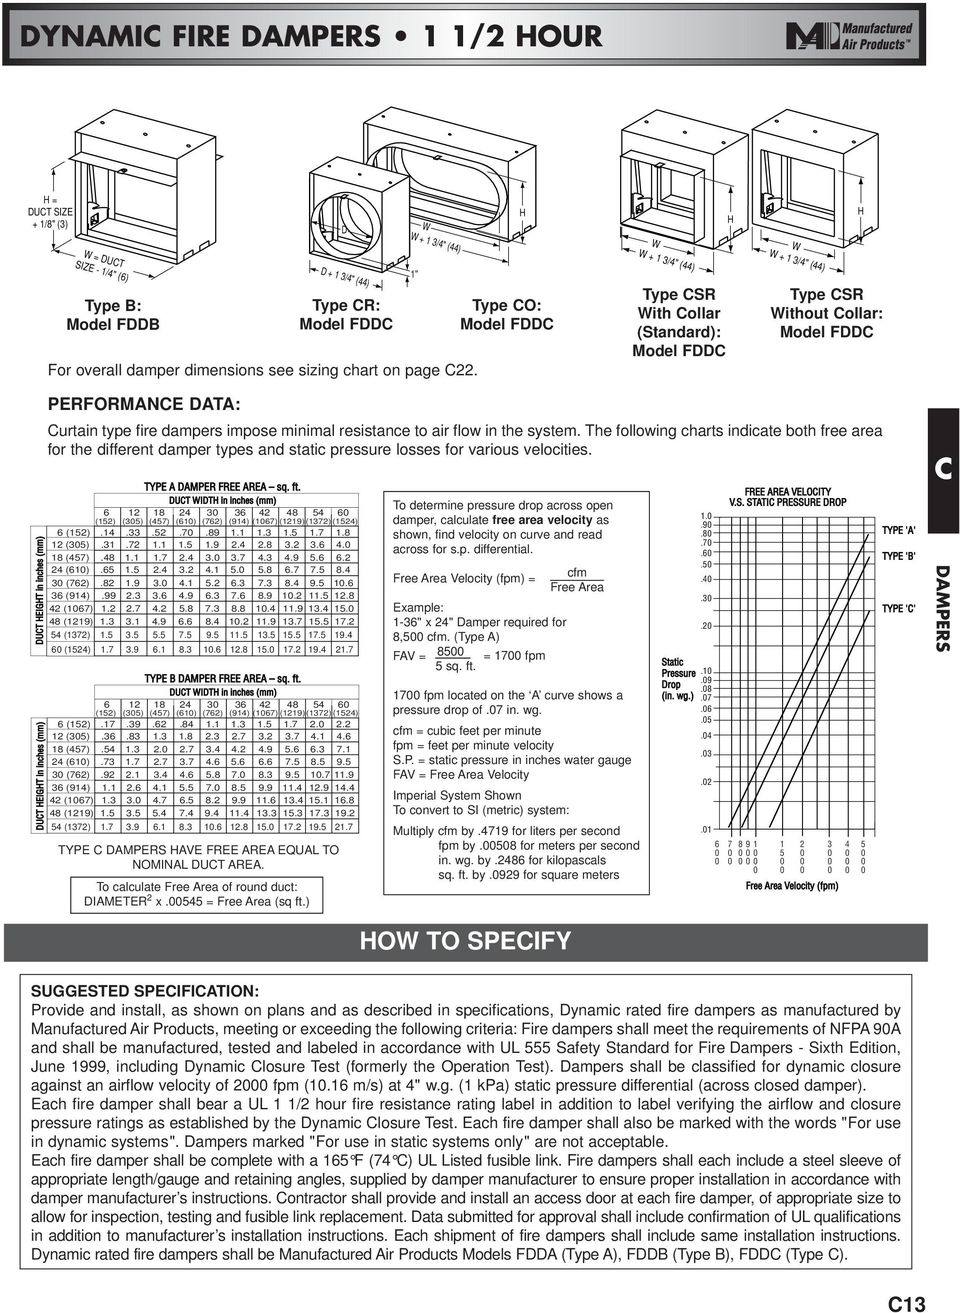 CURTAIN TYPE FIRE DAMPERS - PDF